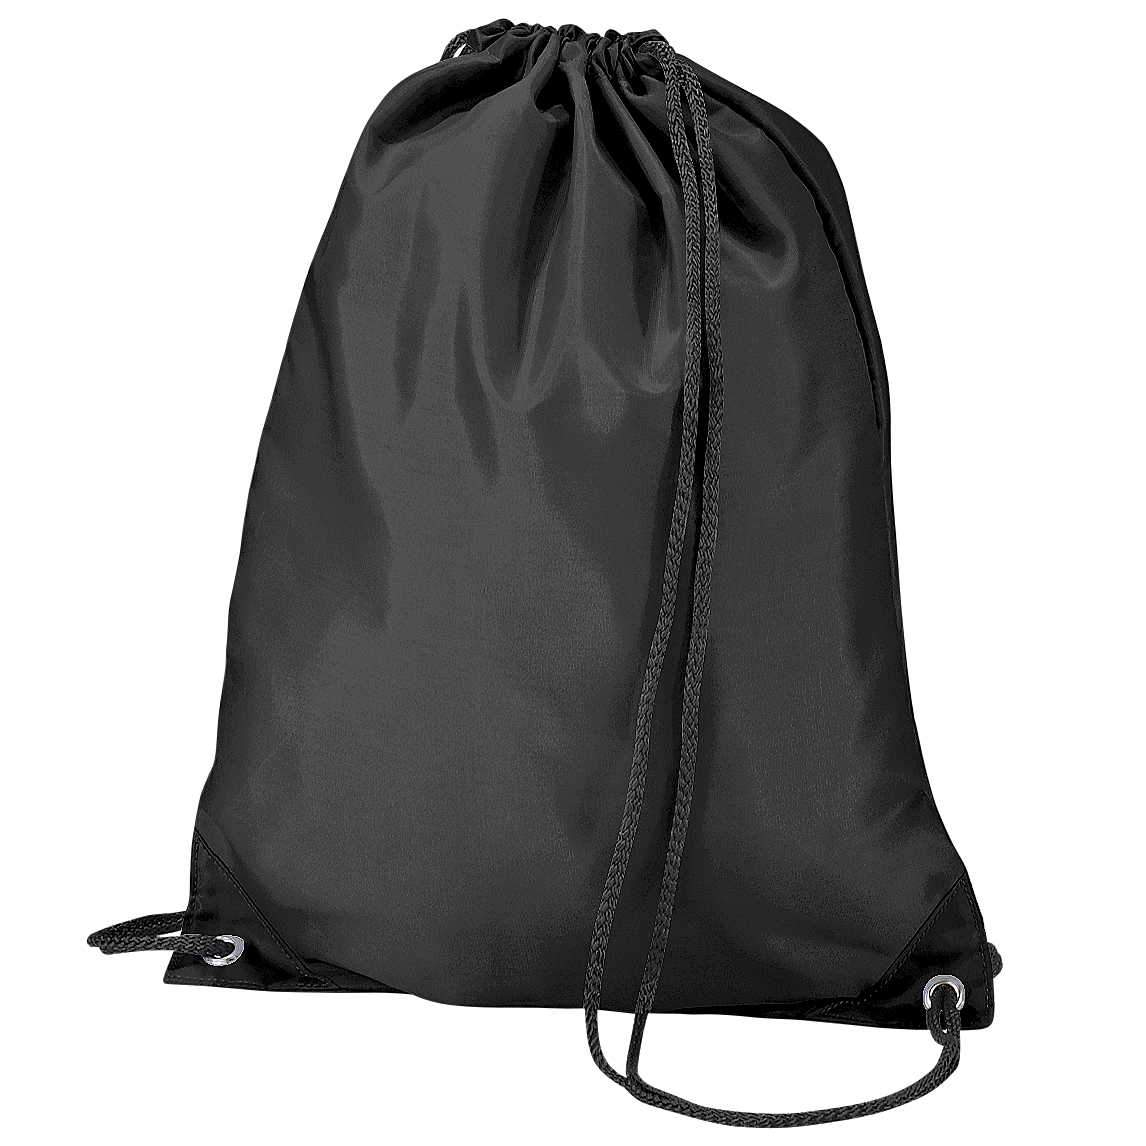 BagBase Budget Water Resistant Sports Gymsac Drawstring Bag (11L) (One Size) (Black)